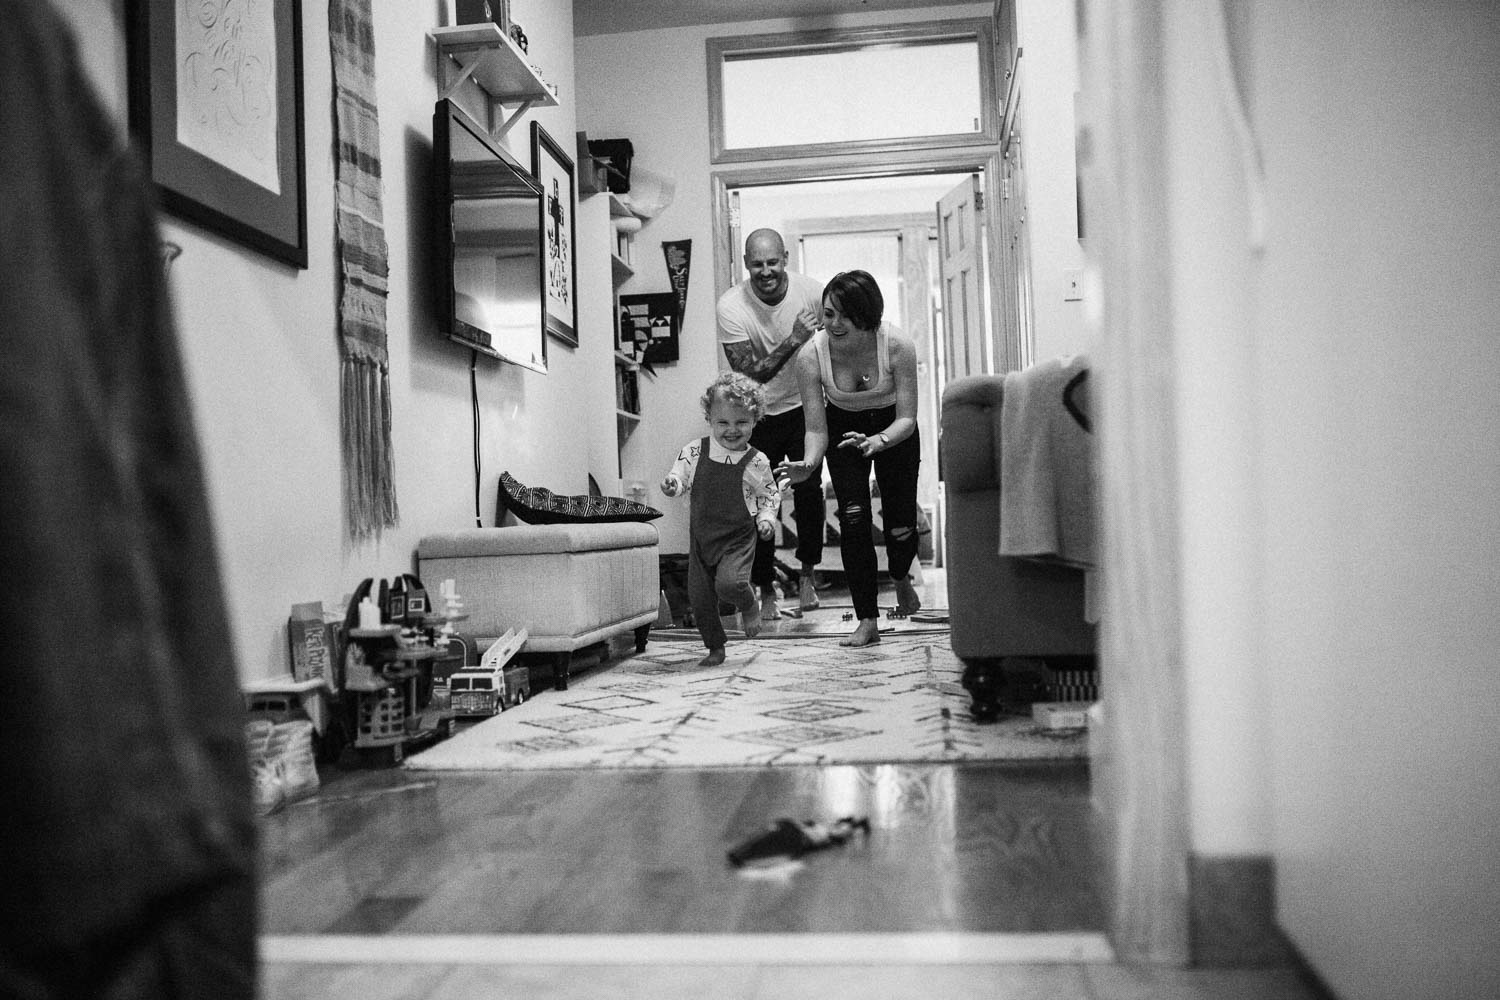 candid-playful-family-moment-chasing-through-the-house-black-and-white-salt-lake-ut